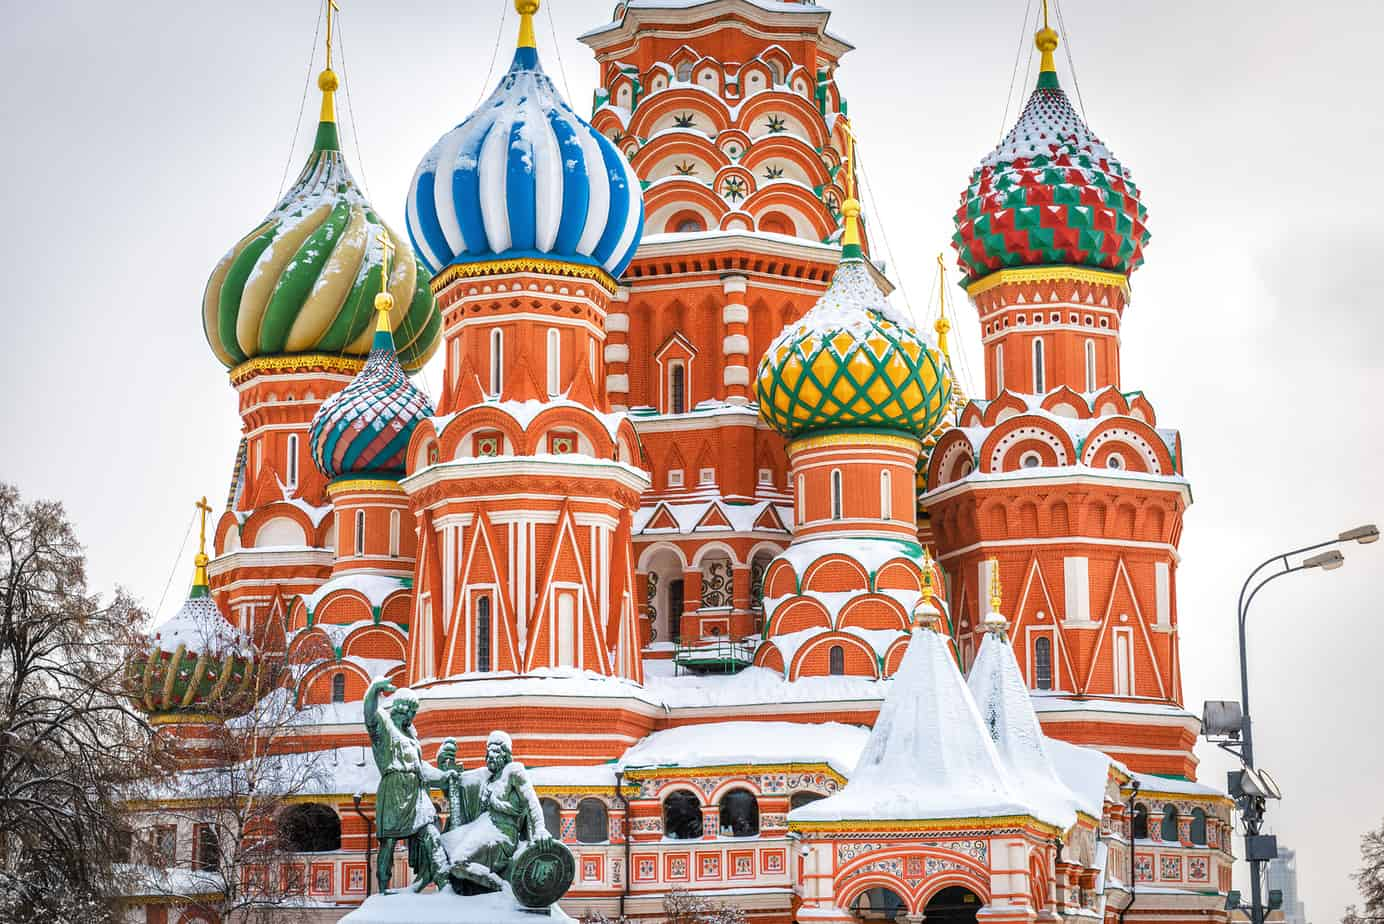 places to visit in moscow - St Basil`s Cathedral on Red Square in winter, Moscow, Russia. It is an old landmark of Moscow. Beautiful view of St Basil`s church during snowfall in the Moscow center. Ancient architecture of Moscow.